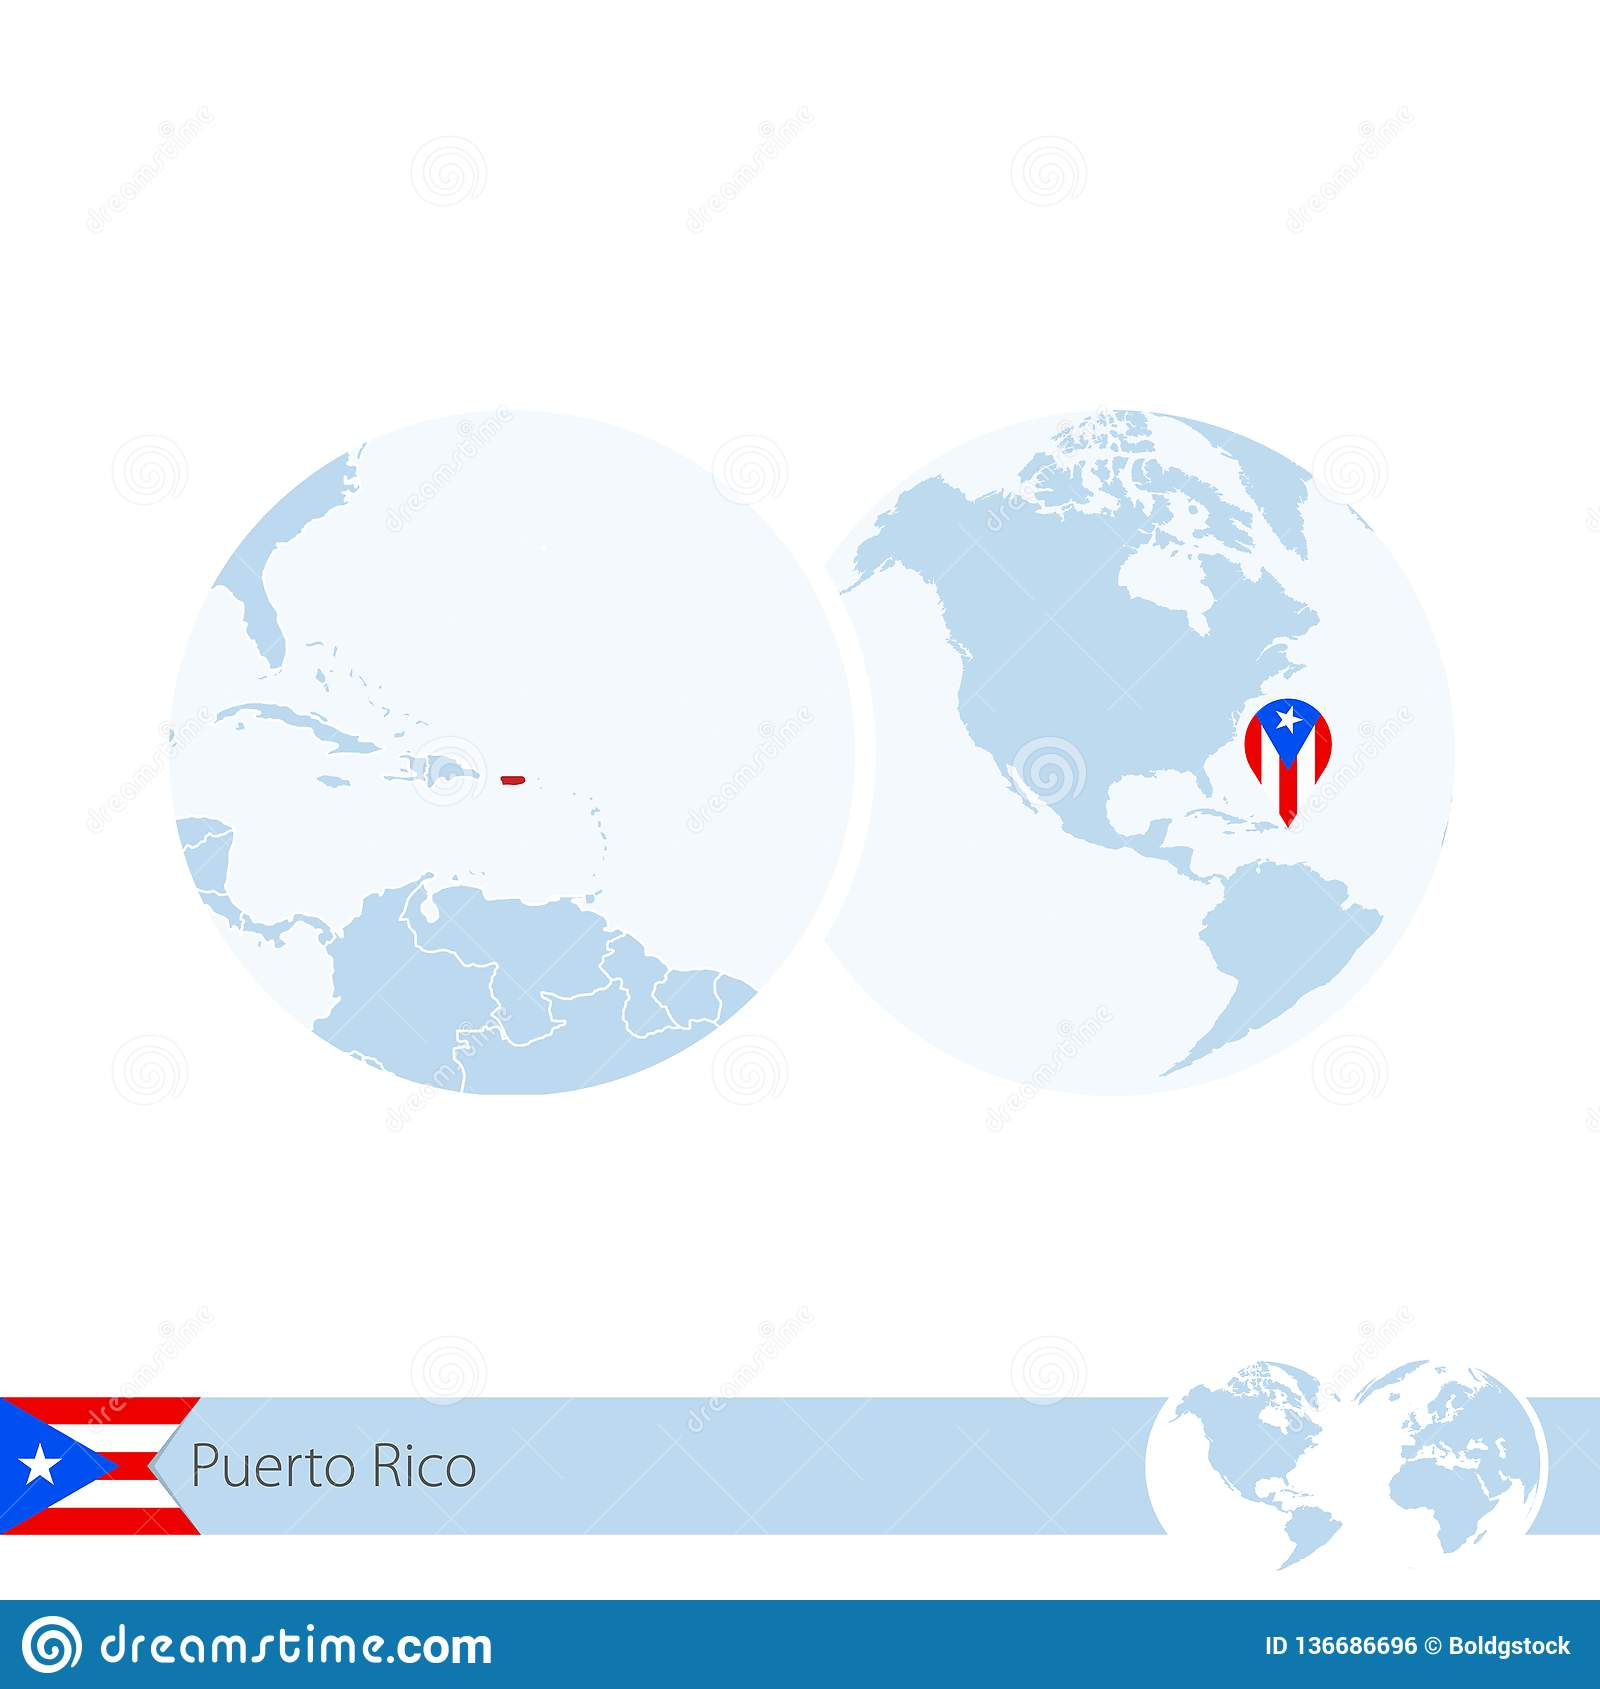 Puerto Rico On World Globe With Flag And Regional Map Of ...